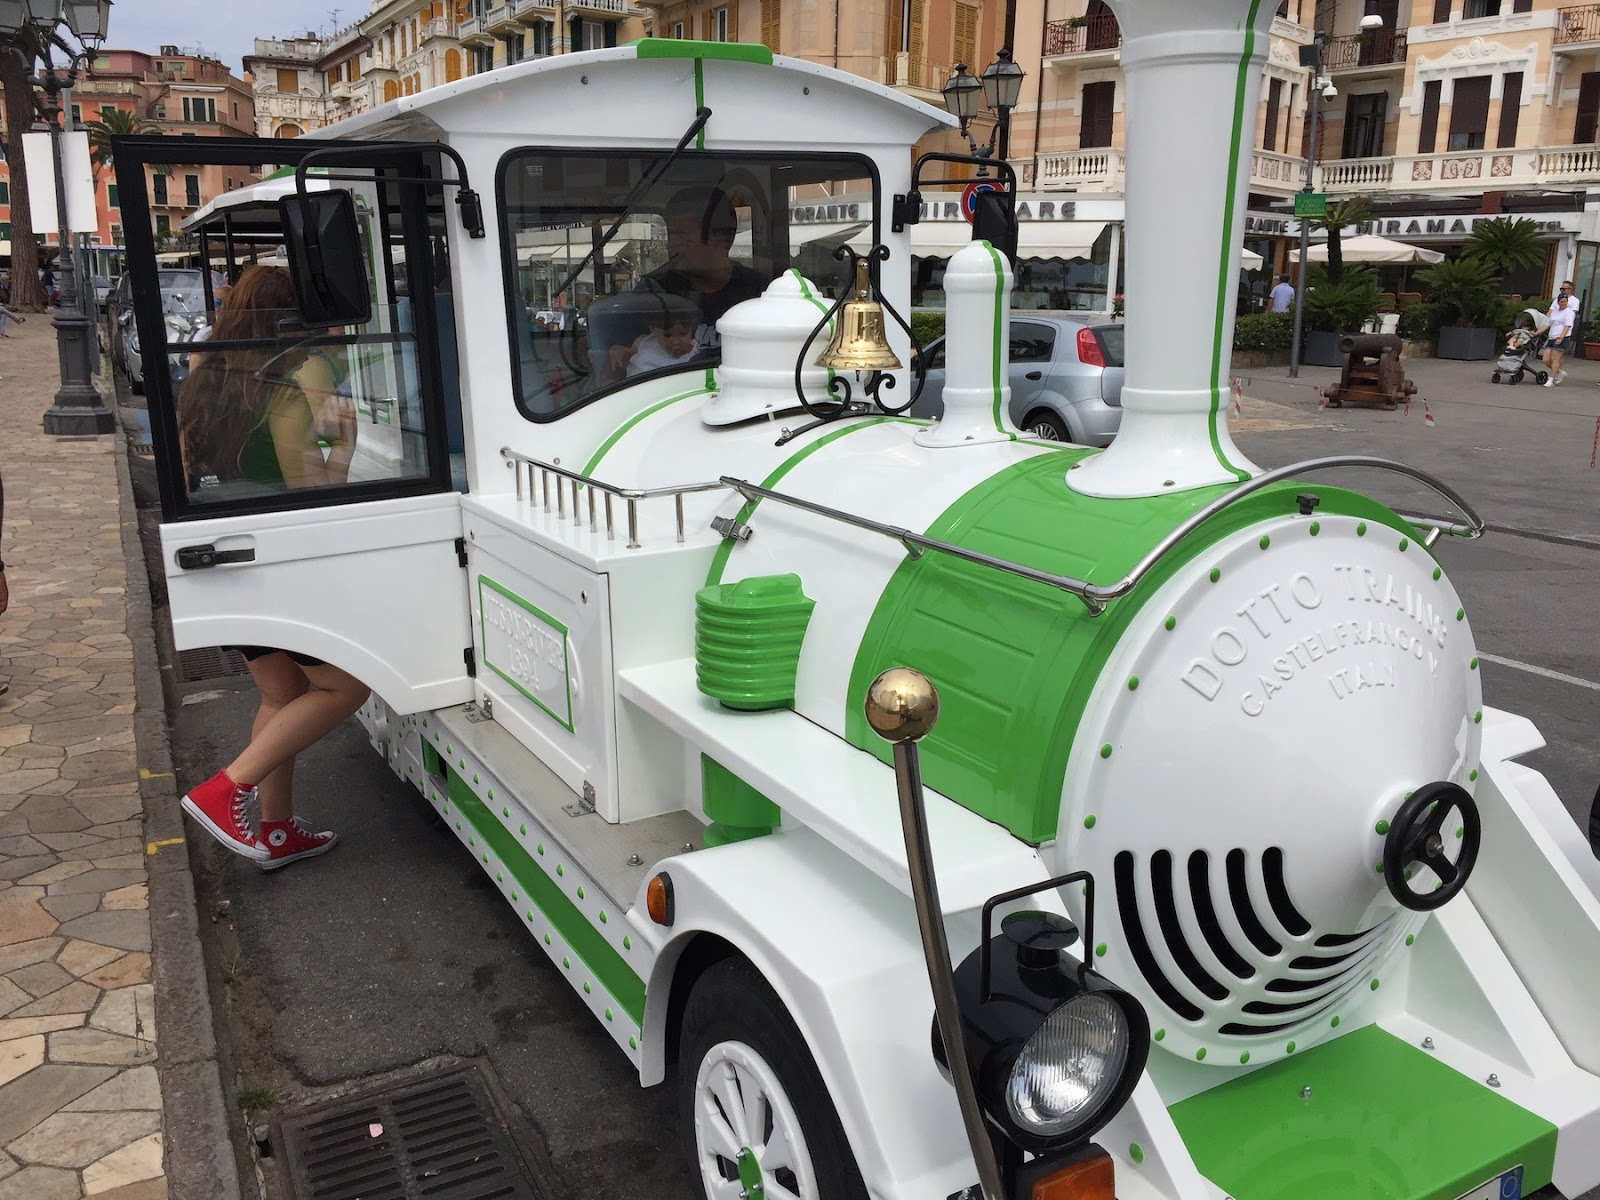 Toy Train on the roads of Rapallo and Santa Margherita